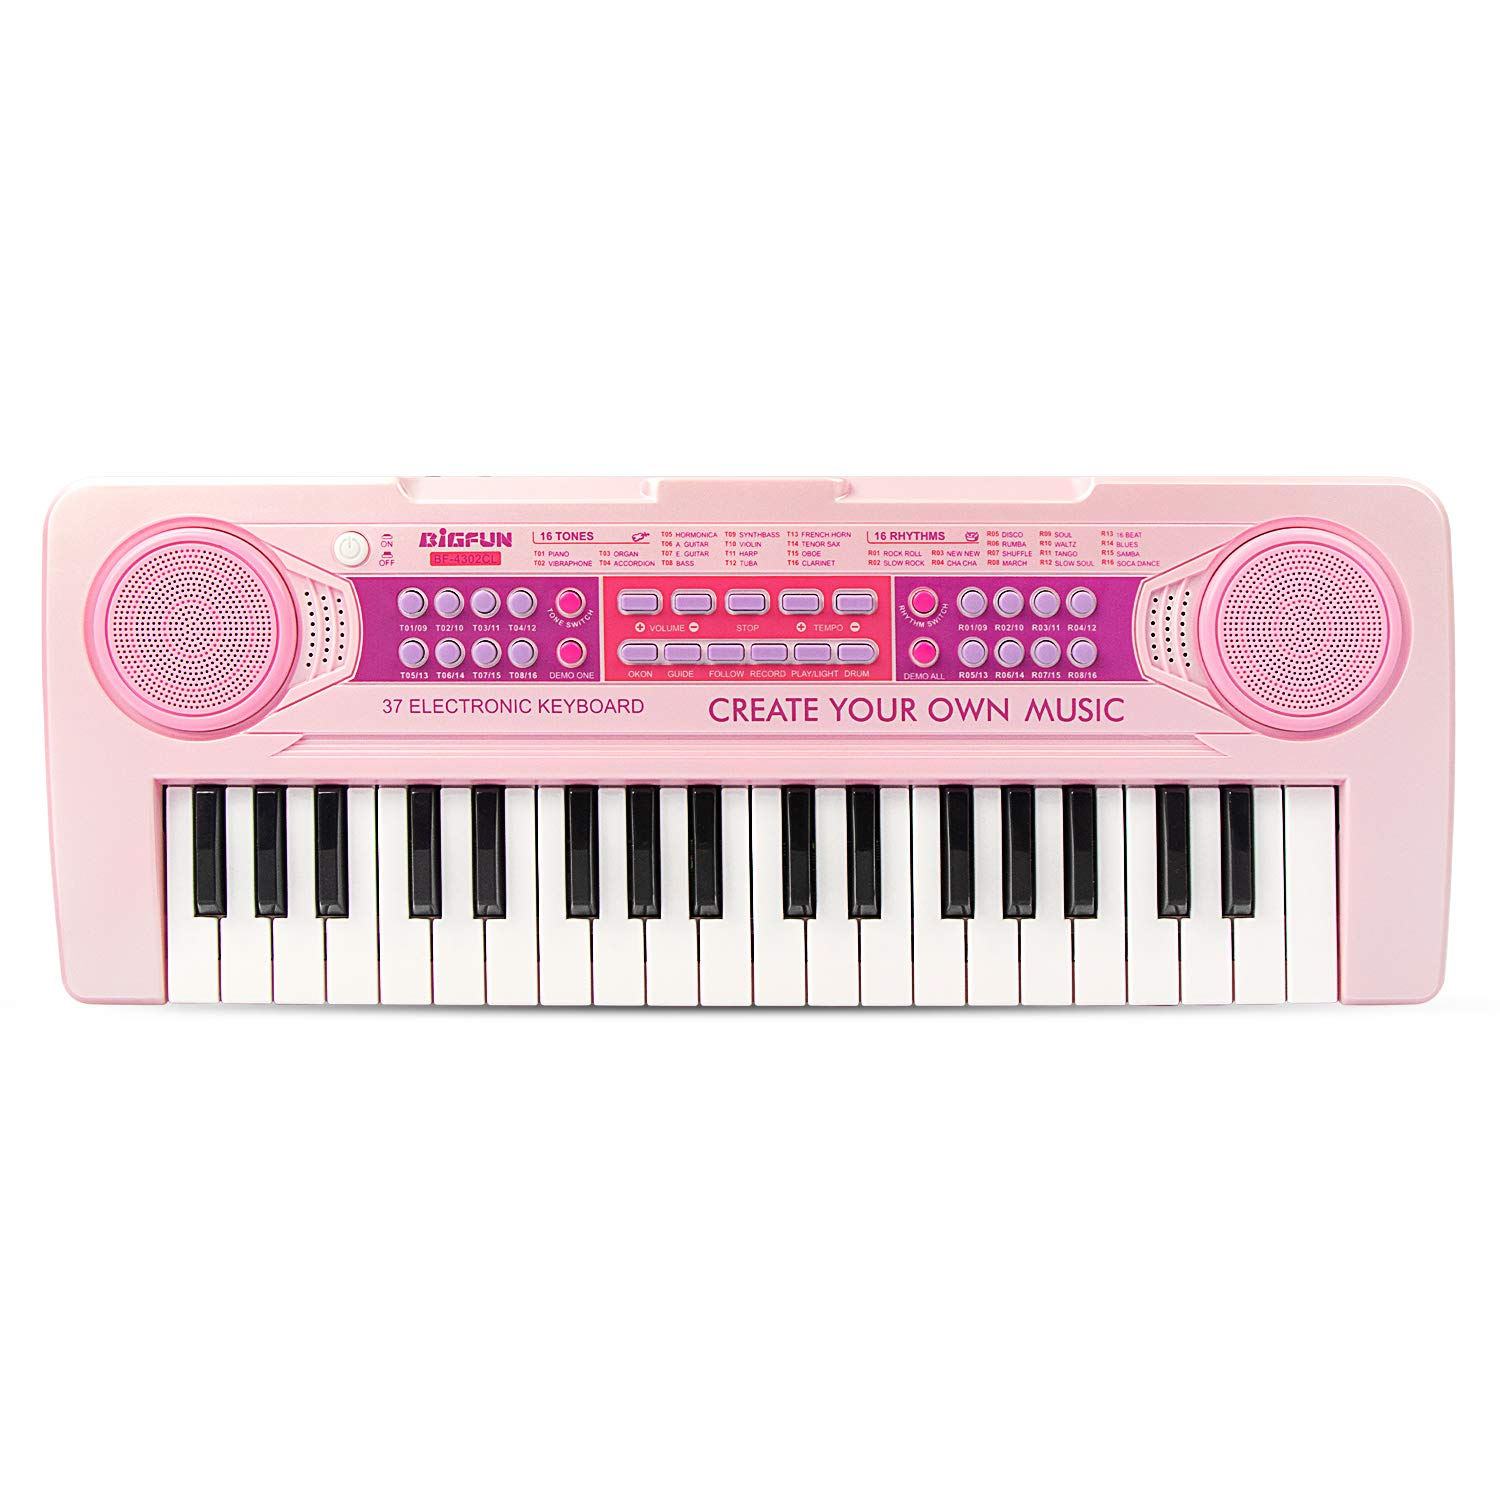 BIGFUN 37 Keys Multifunction Recharging Portable Electronic Kids Piano Musical Teaching Keyboard for Kids Children Early Learning Educational Toy with Double Speakers (Pink) by BIGFUN